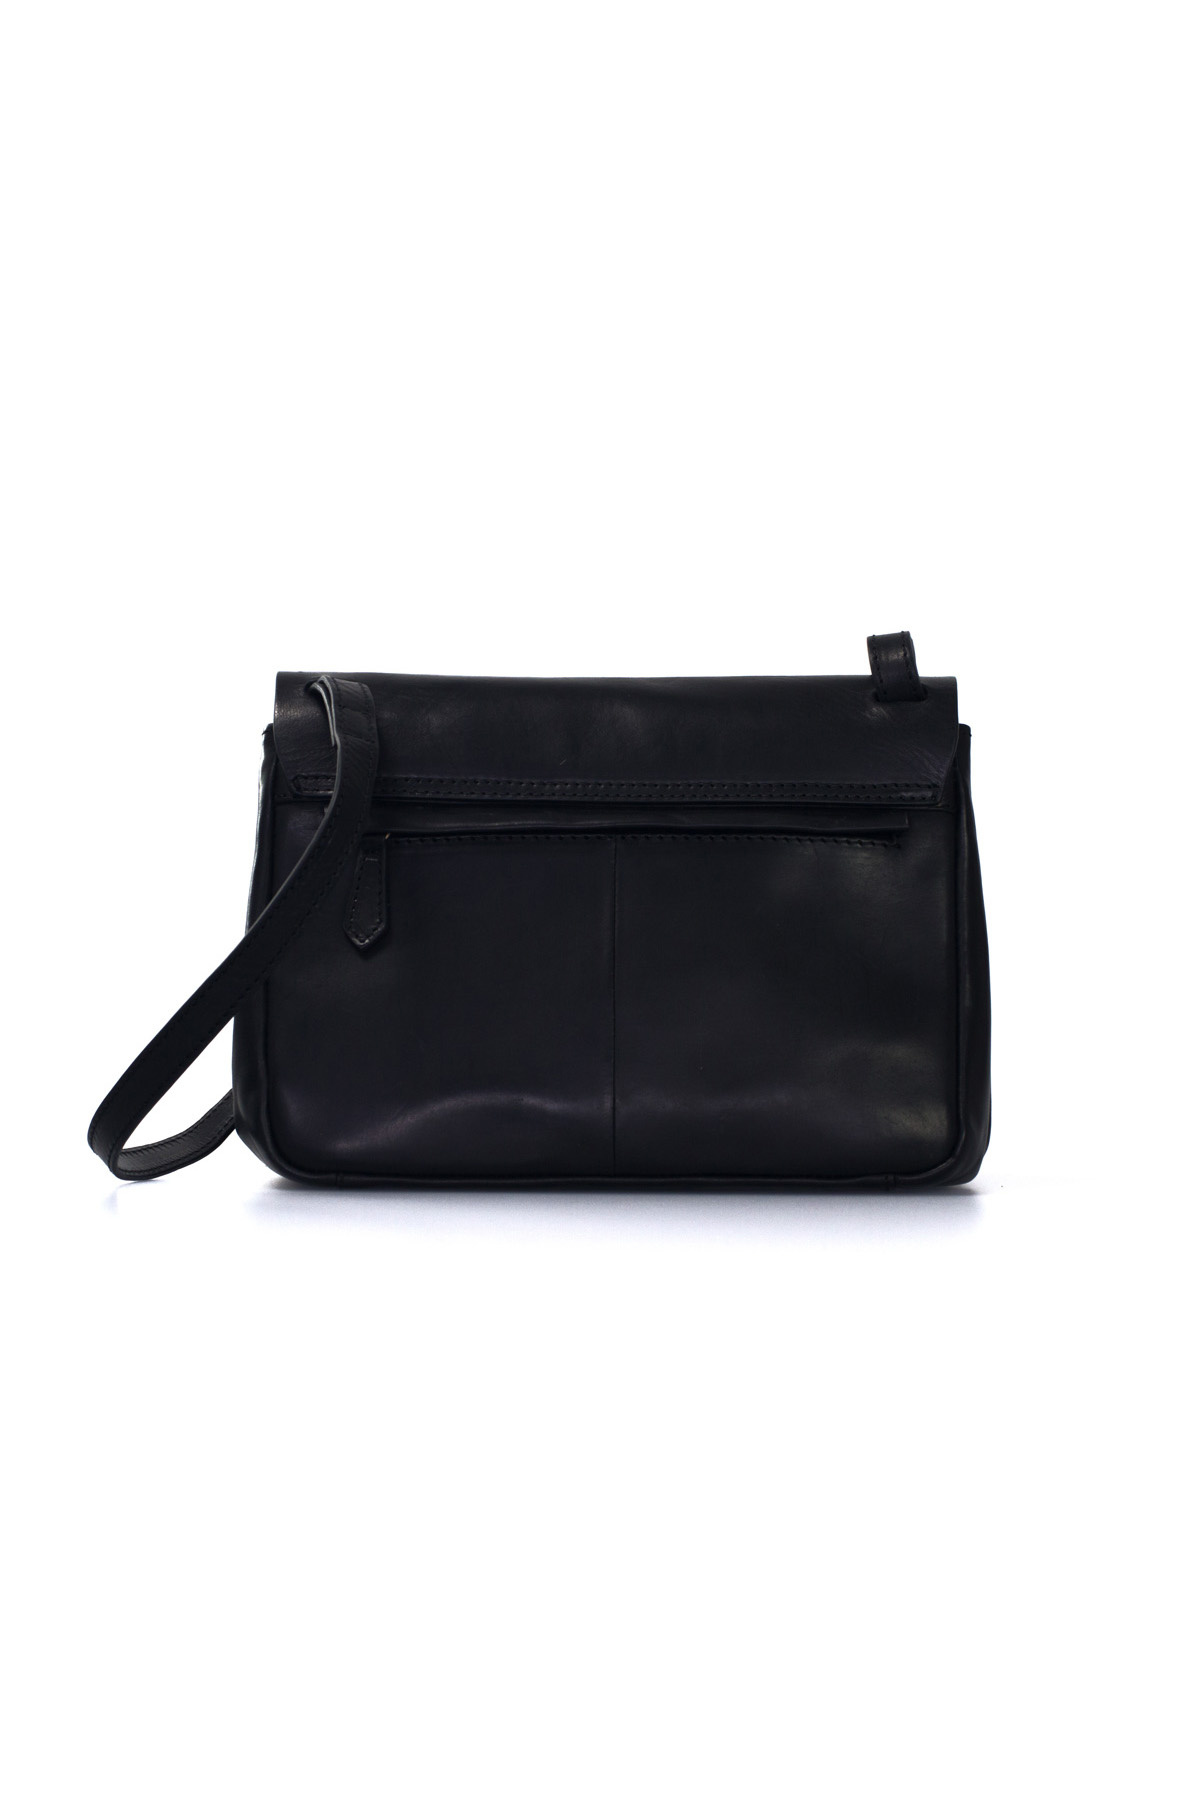 The Lucy Bag - Eco Black Classic Leather-3